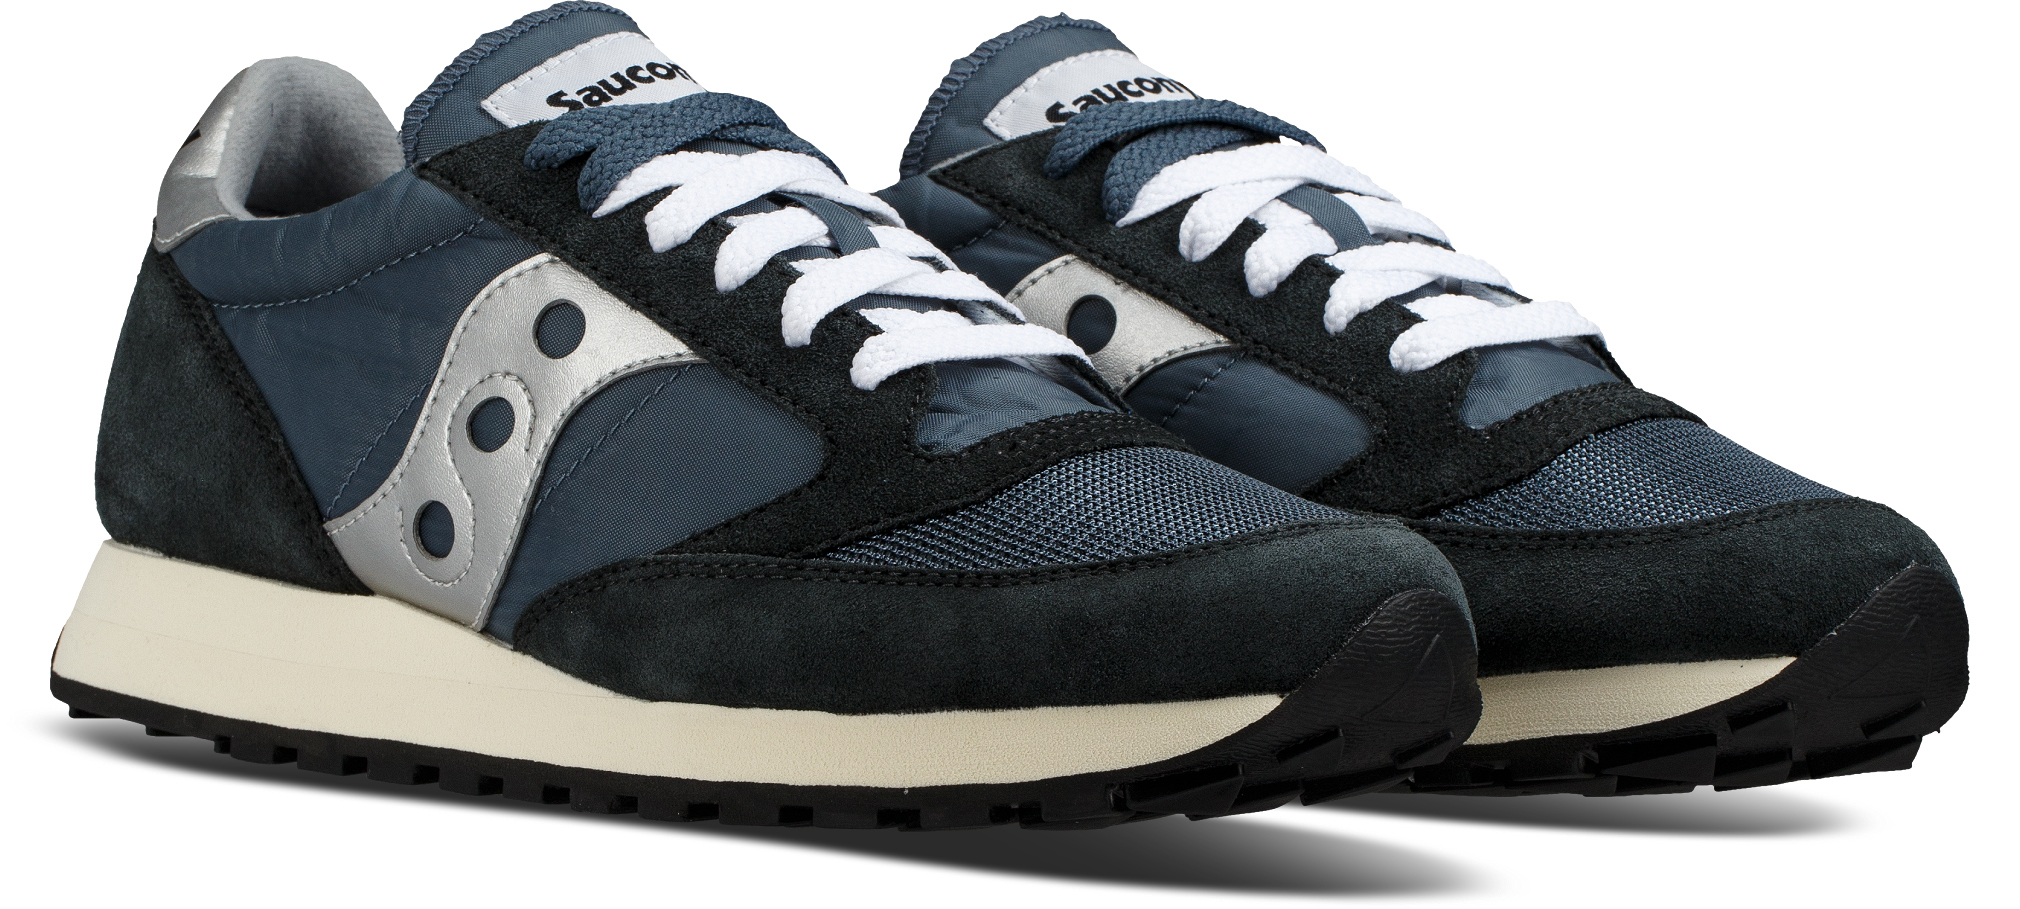 Saucony BLUE/NAVY/SILVER Jazz Orignial Vintage Shoes